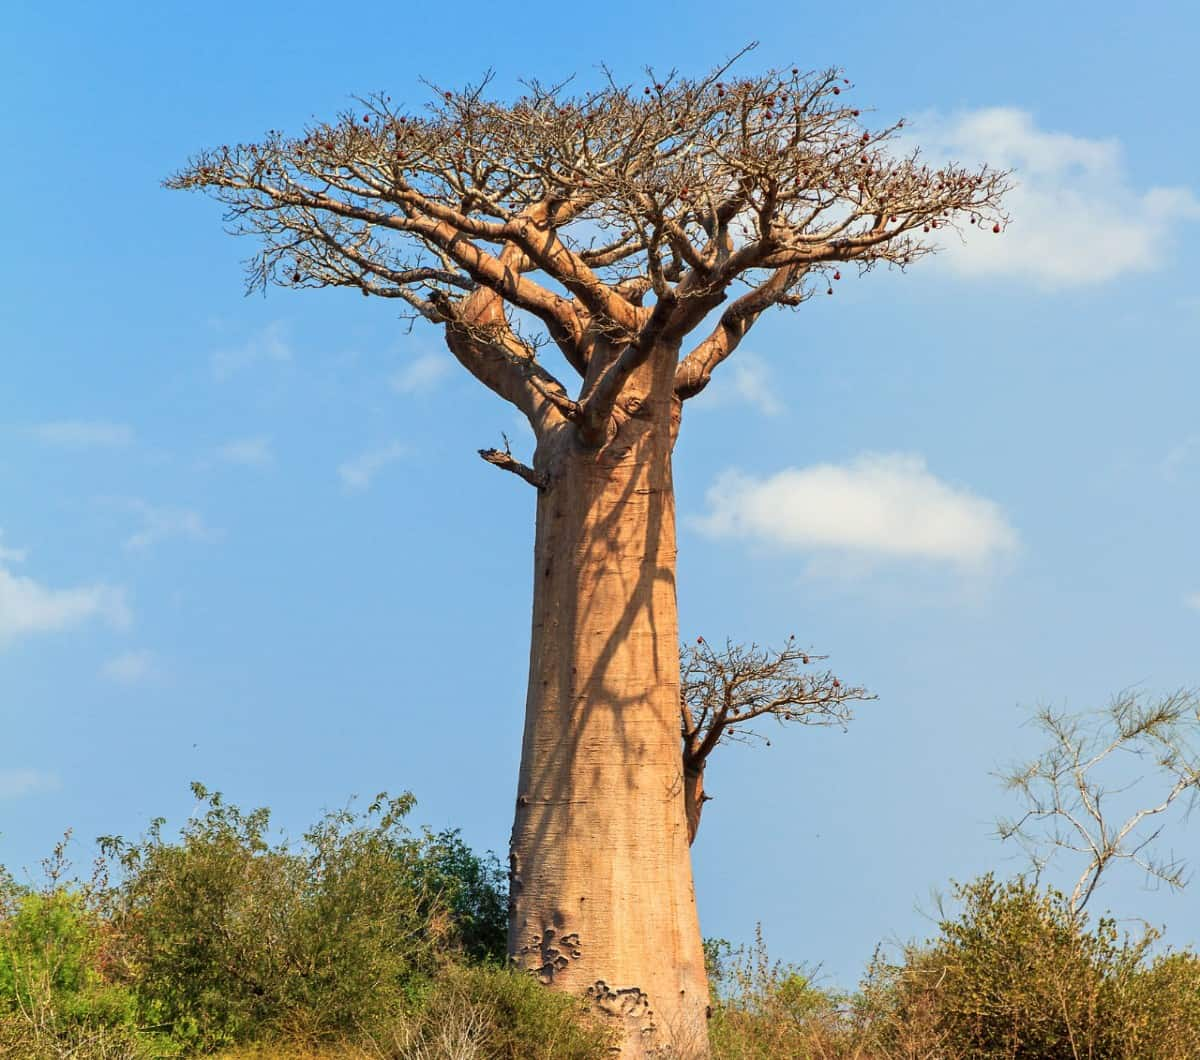 The baobab is also called the tree of life.